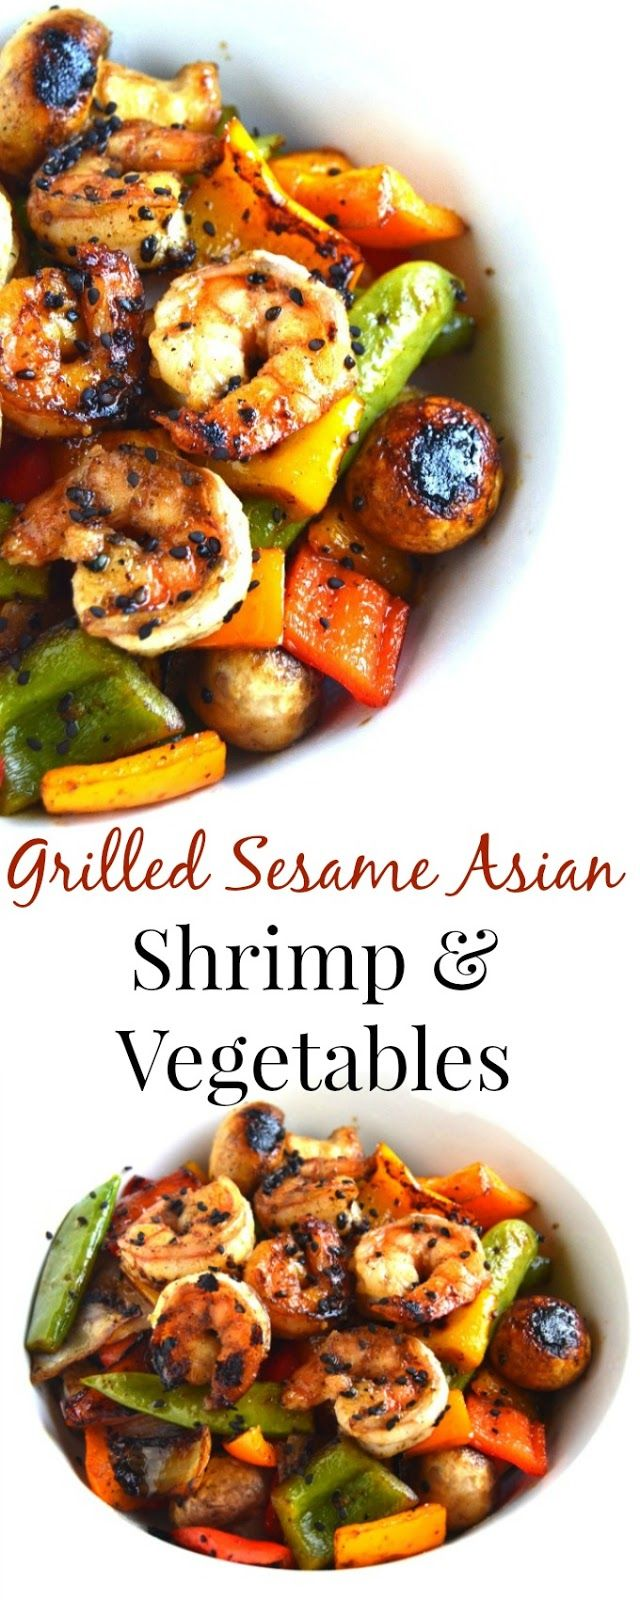 Grilled Sesame Asian Shrimp and Vegetables takes 20 minutes to make and is marinated in a delicious ta